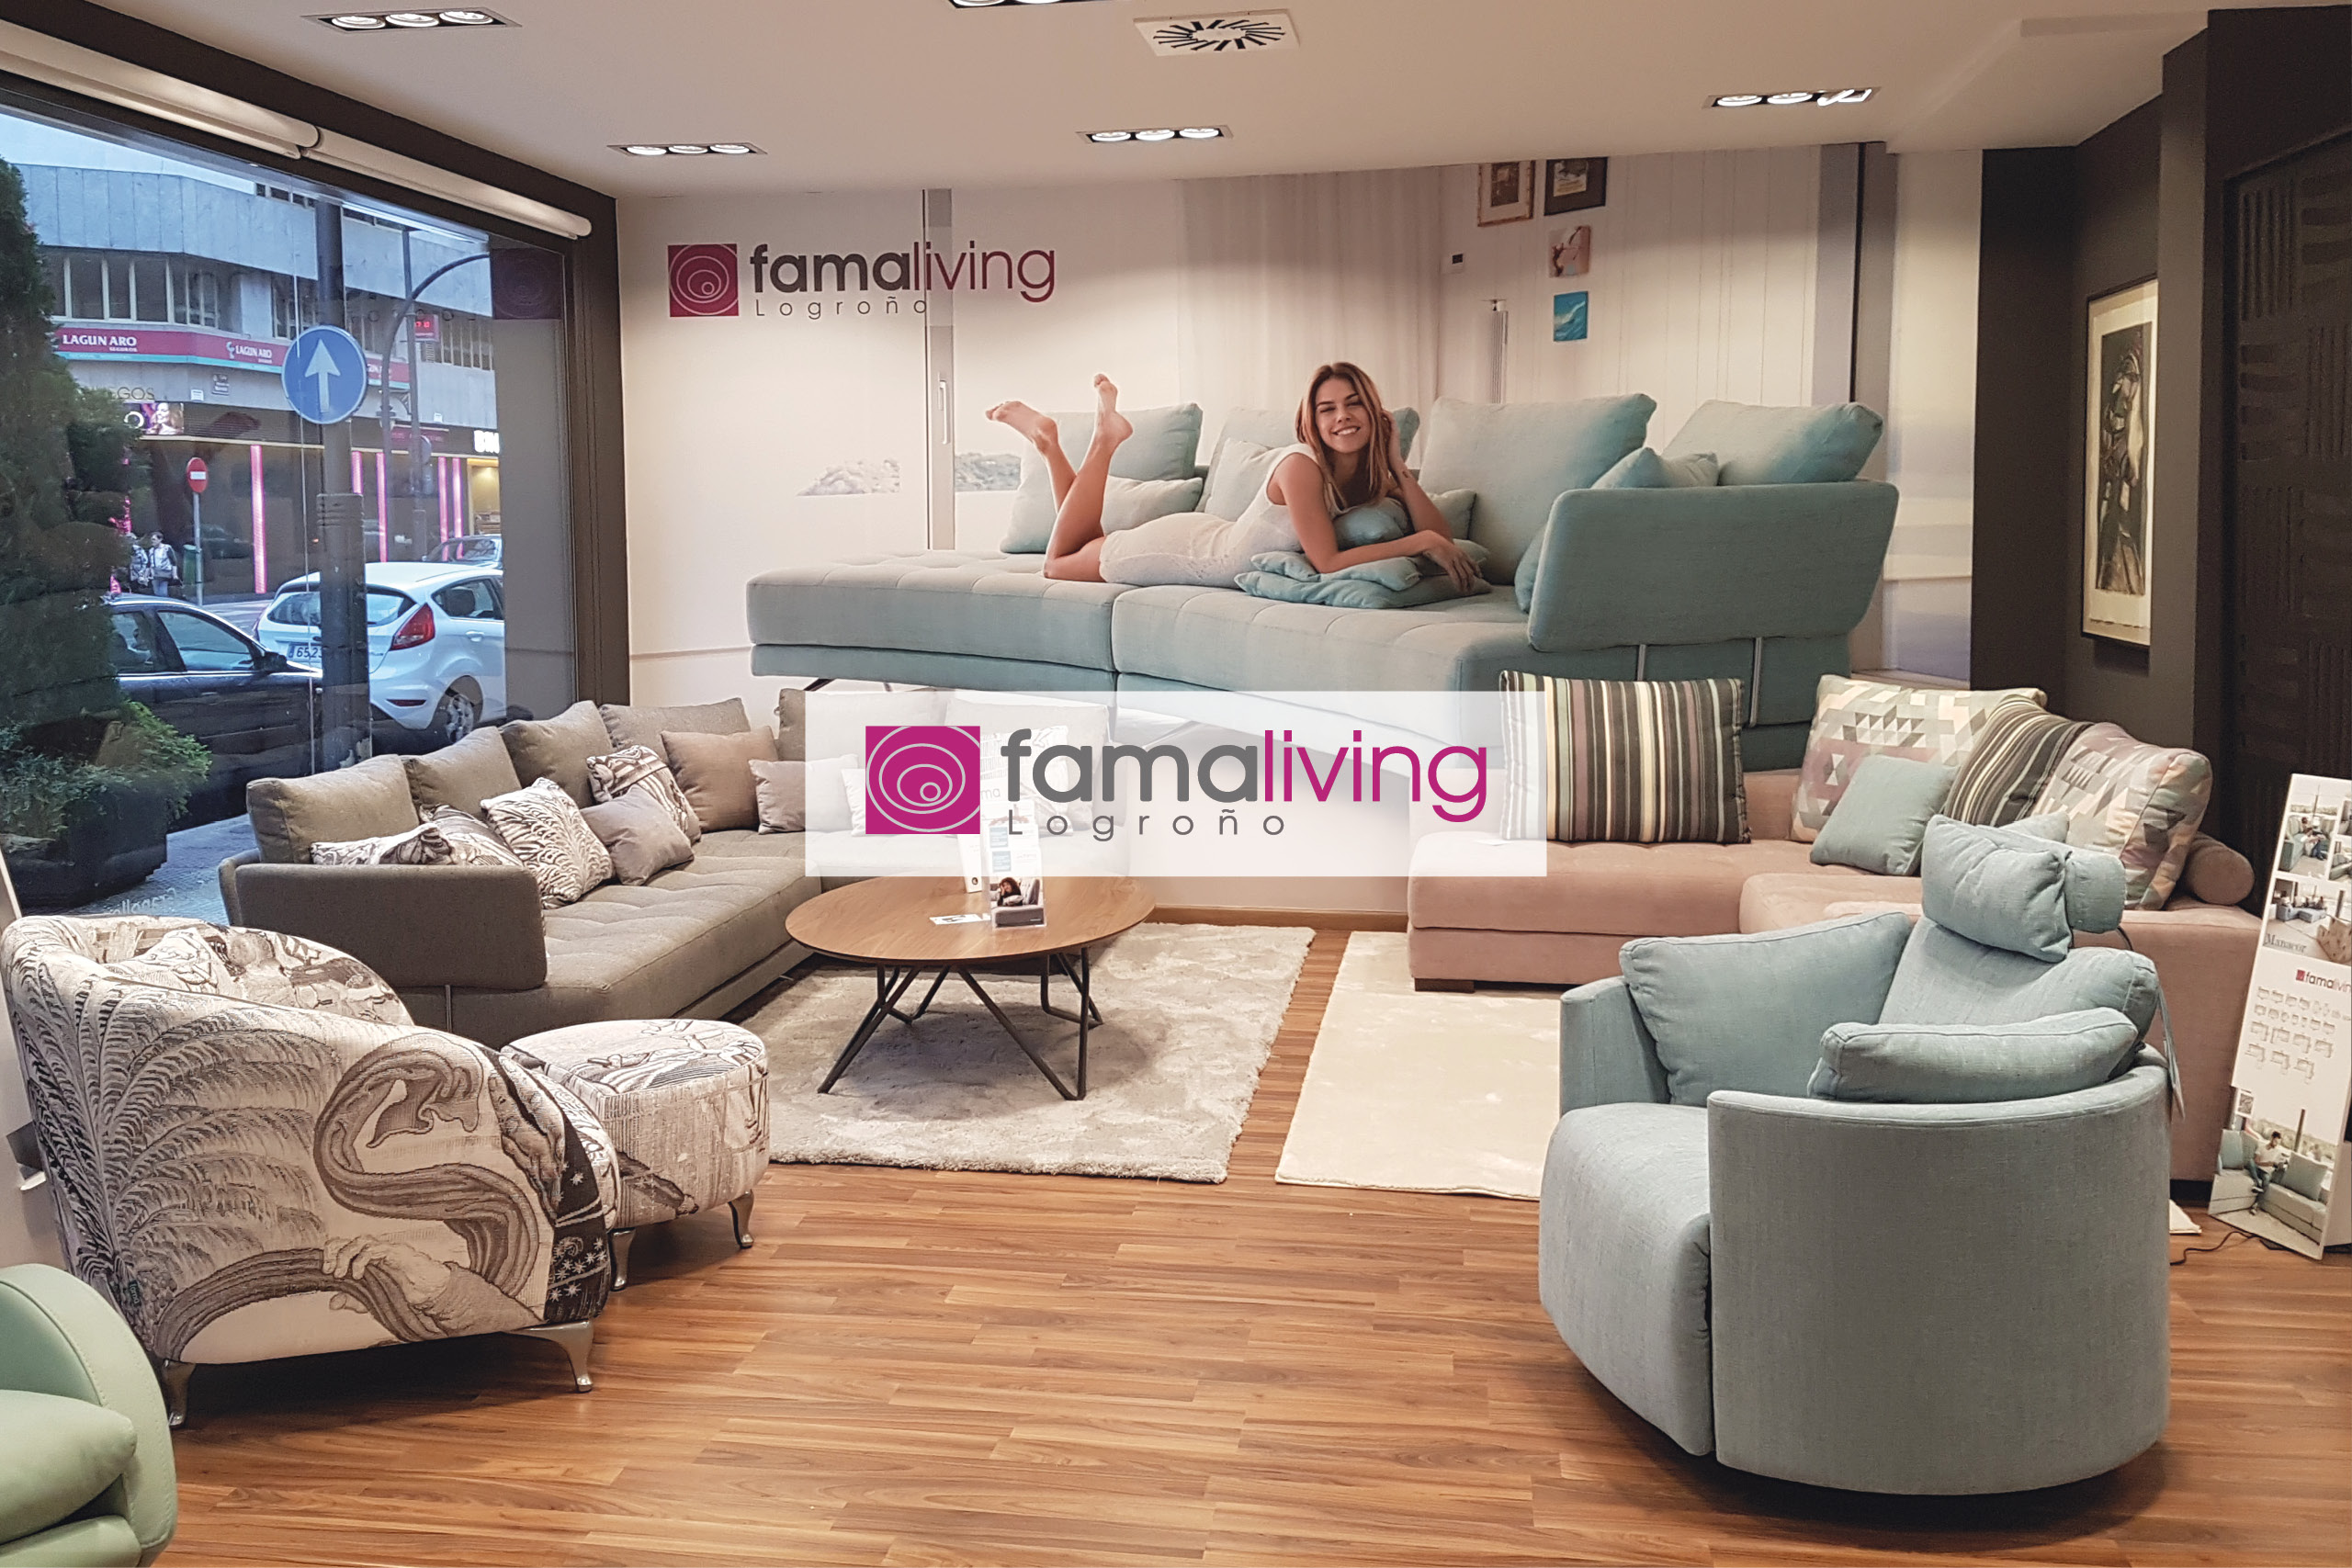 https://www.famaliving.com/logrono-en